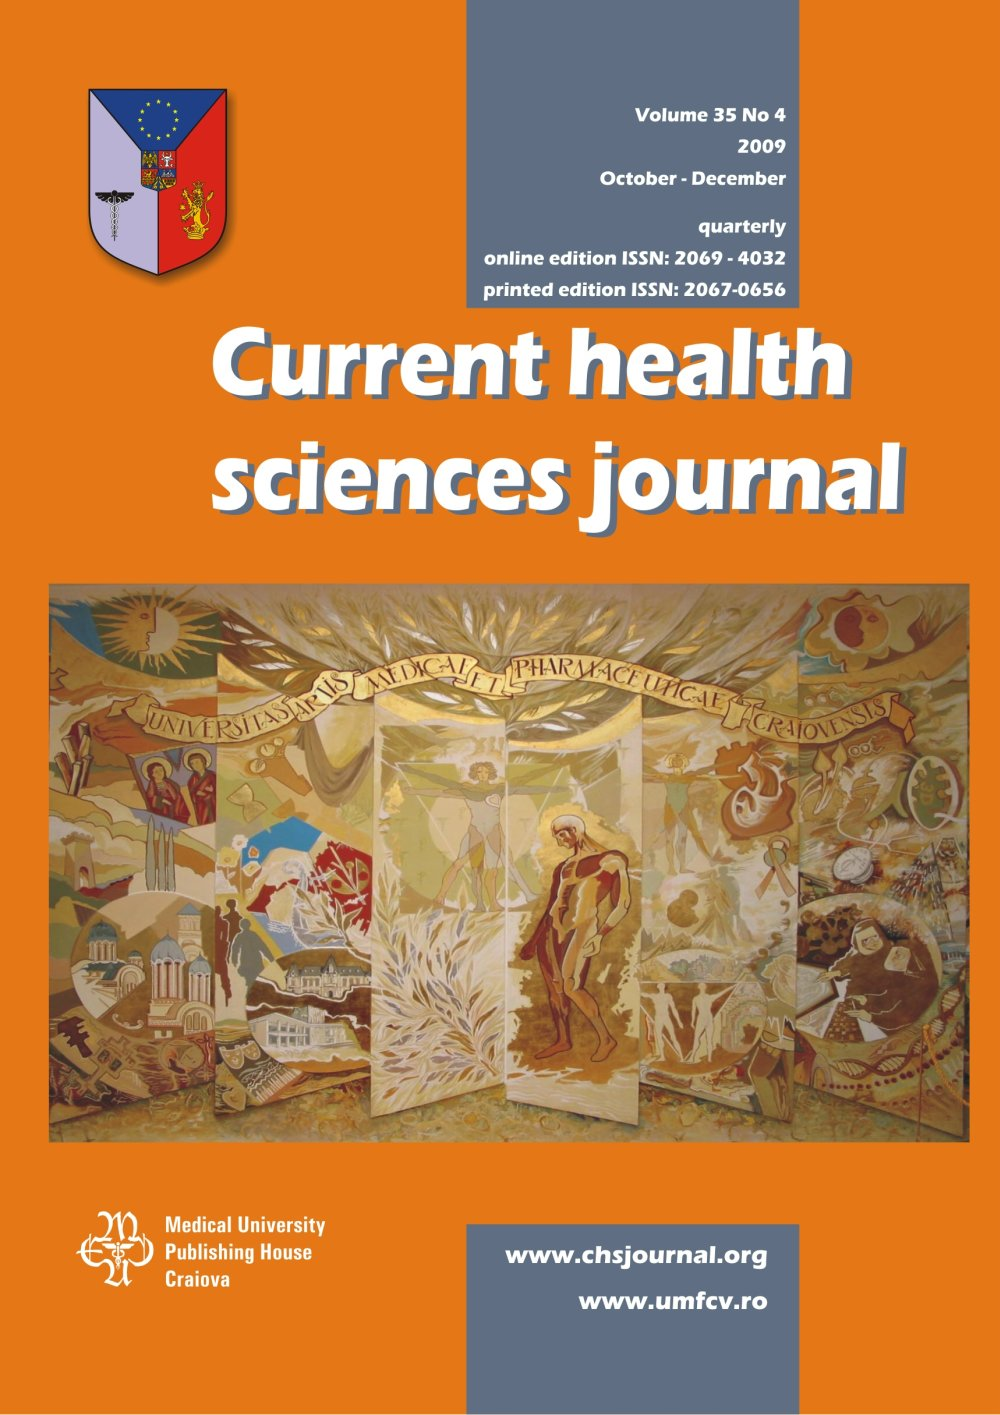 Current Health Sciences Journal, vol. 35 no. 4, 2009